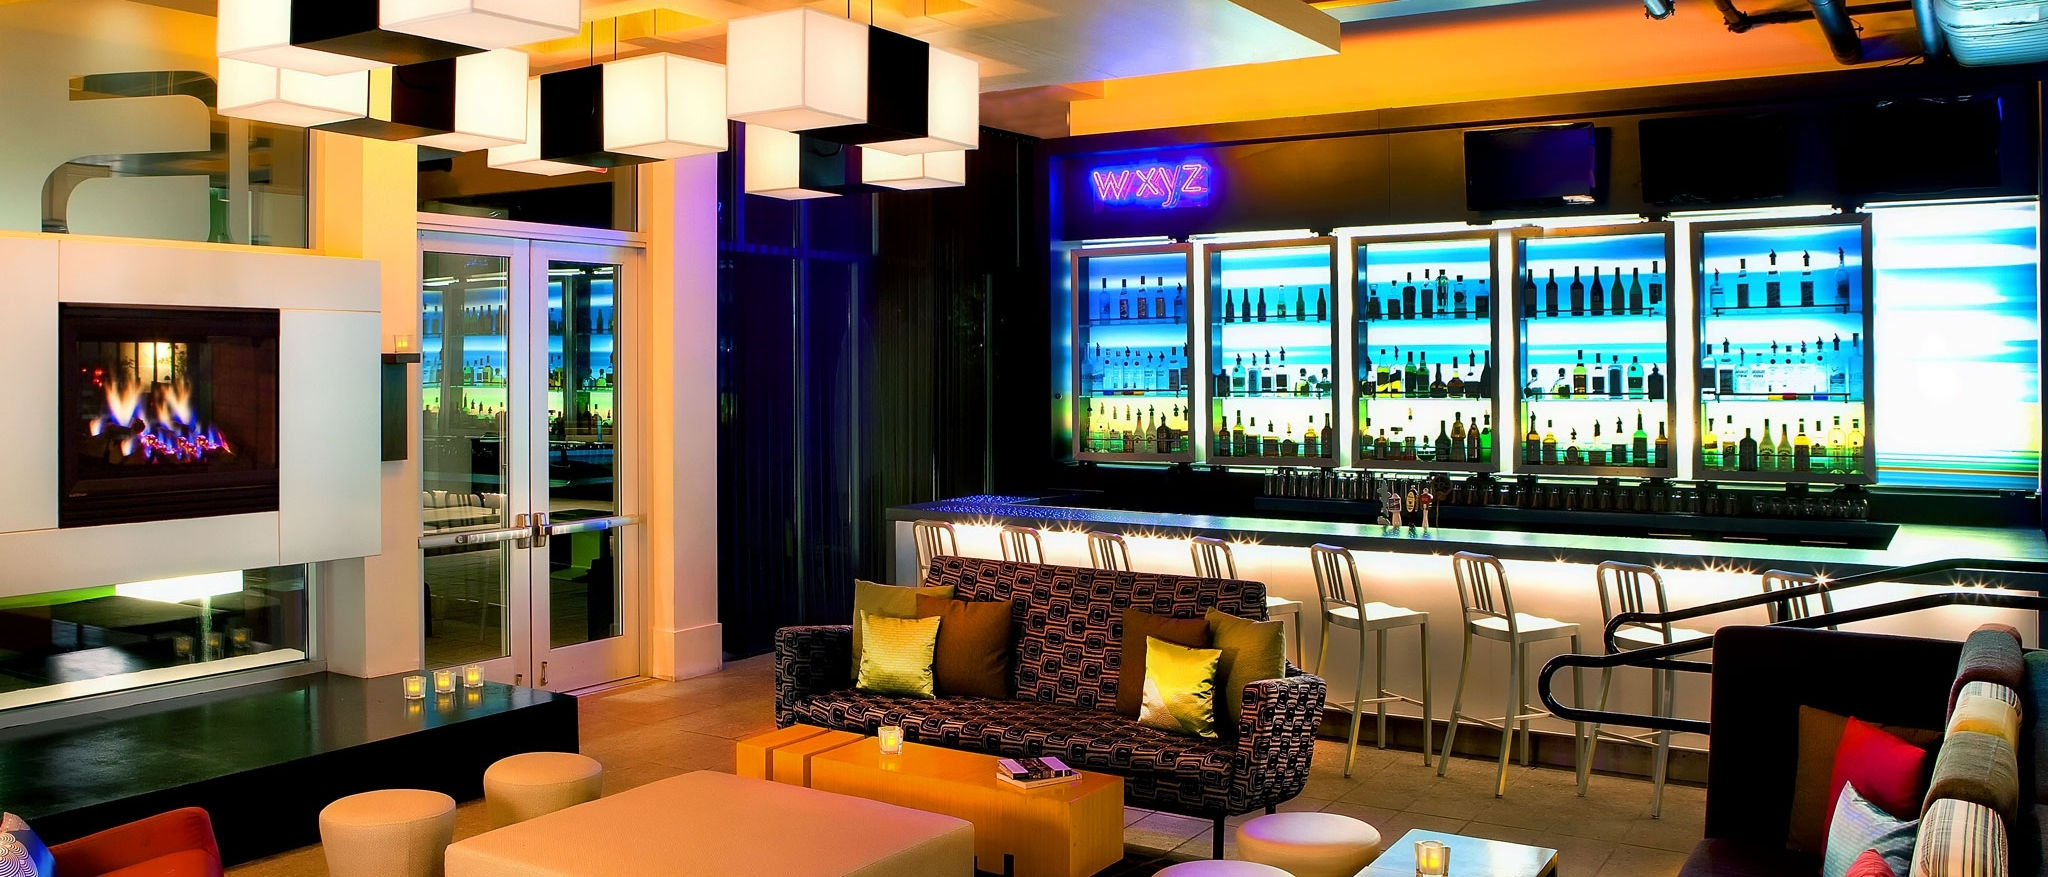 Aloft Philadelphia Airport - Re:mix lounge